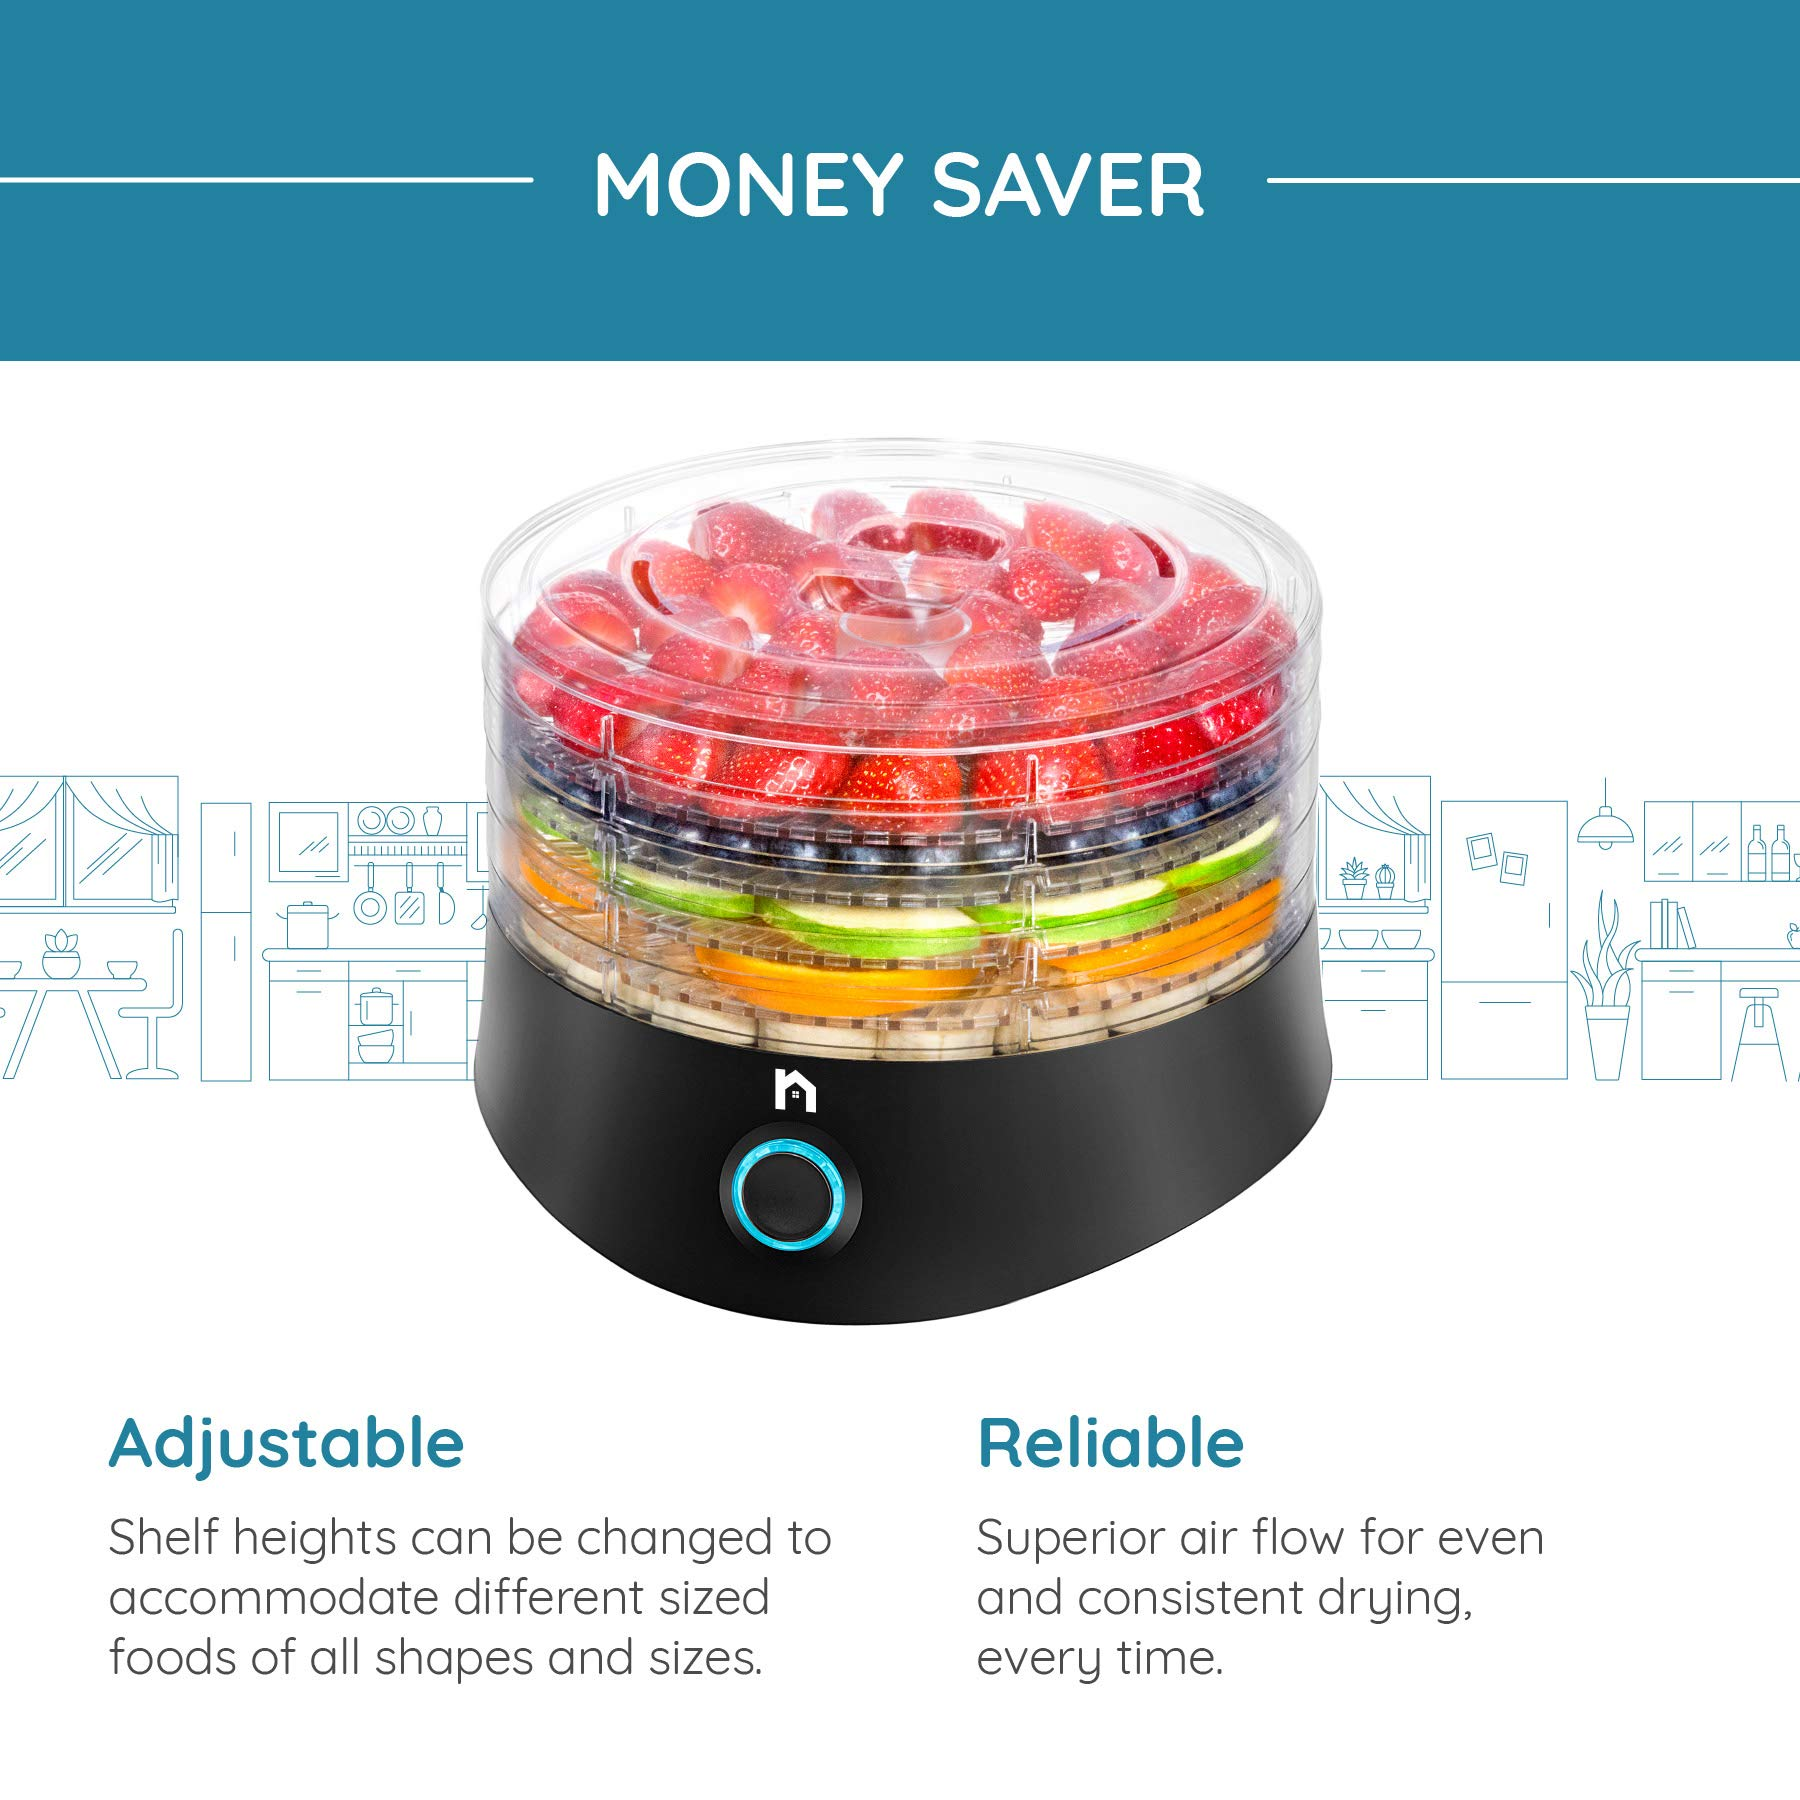 New House Kitchen 5 Round Dehydrator BPA-Free Stackable Transparent Trays Electric Professional Multi-Tier Food Preserver, Beef Jerky Maker, Fruit & Vegetable Dryer, Compact, Black by New House Kitchen (Image #3)